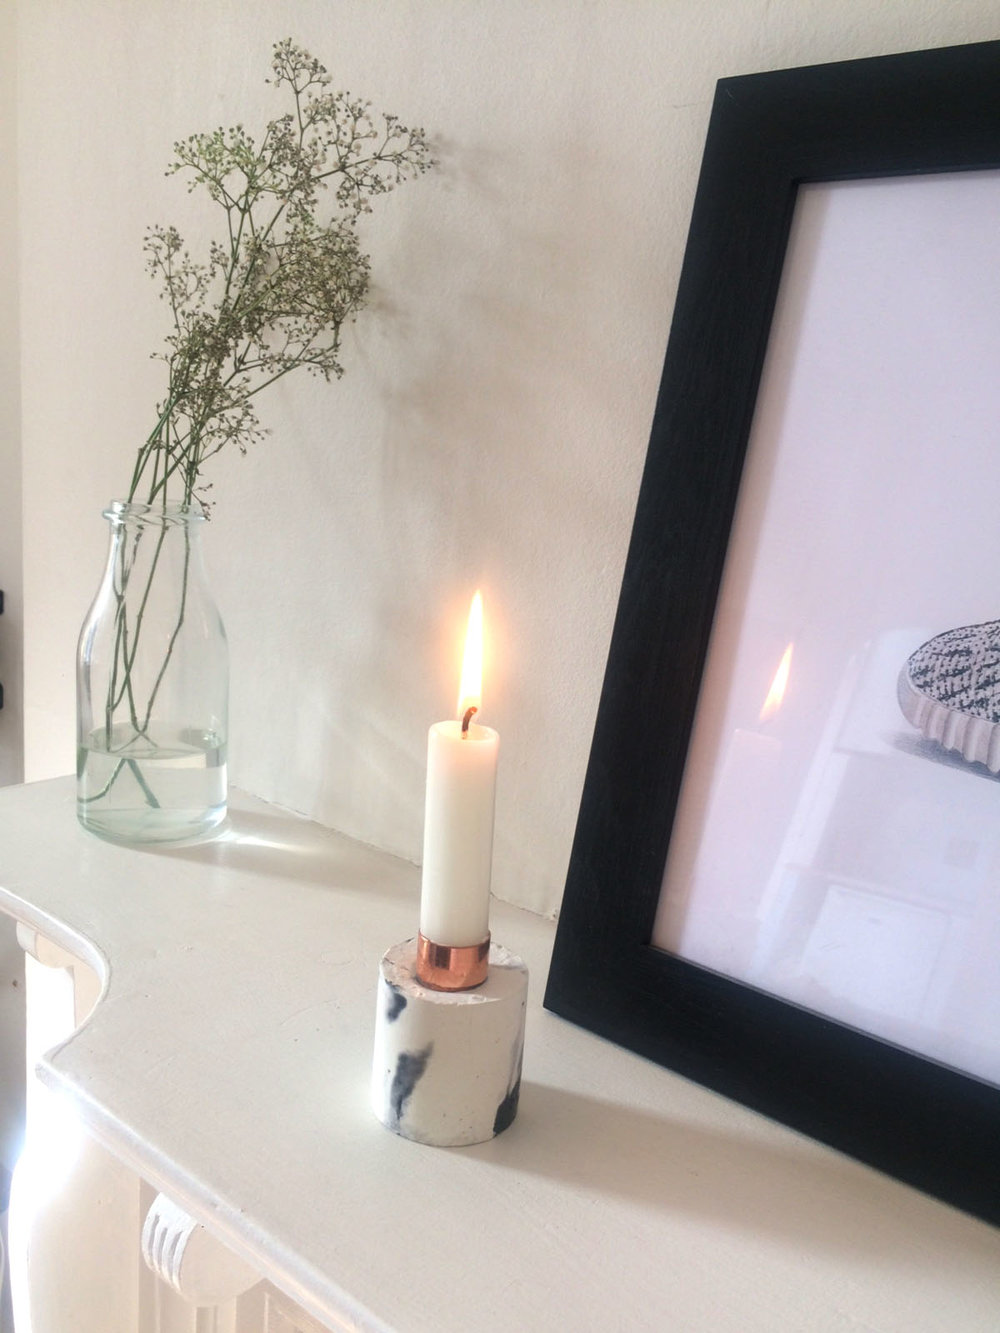 Copper + Solders marbled concrete candle holder looks sublime in its new London home......how lovely!